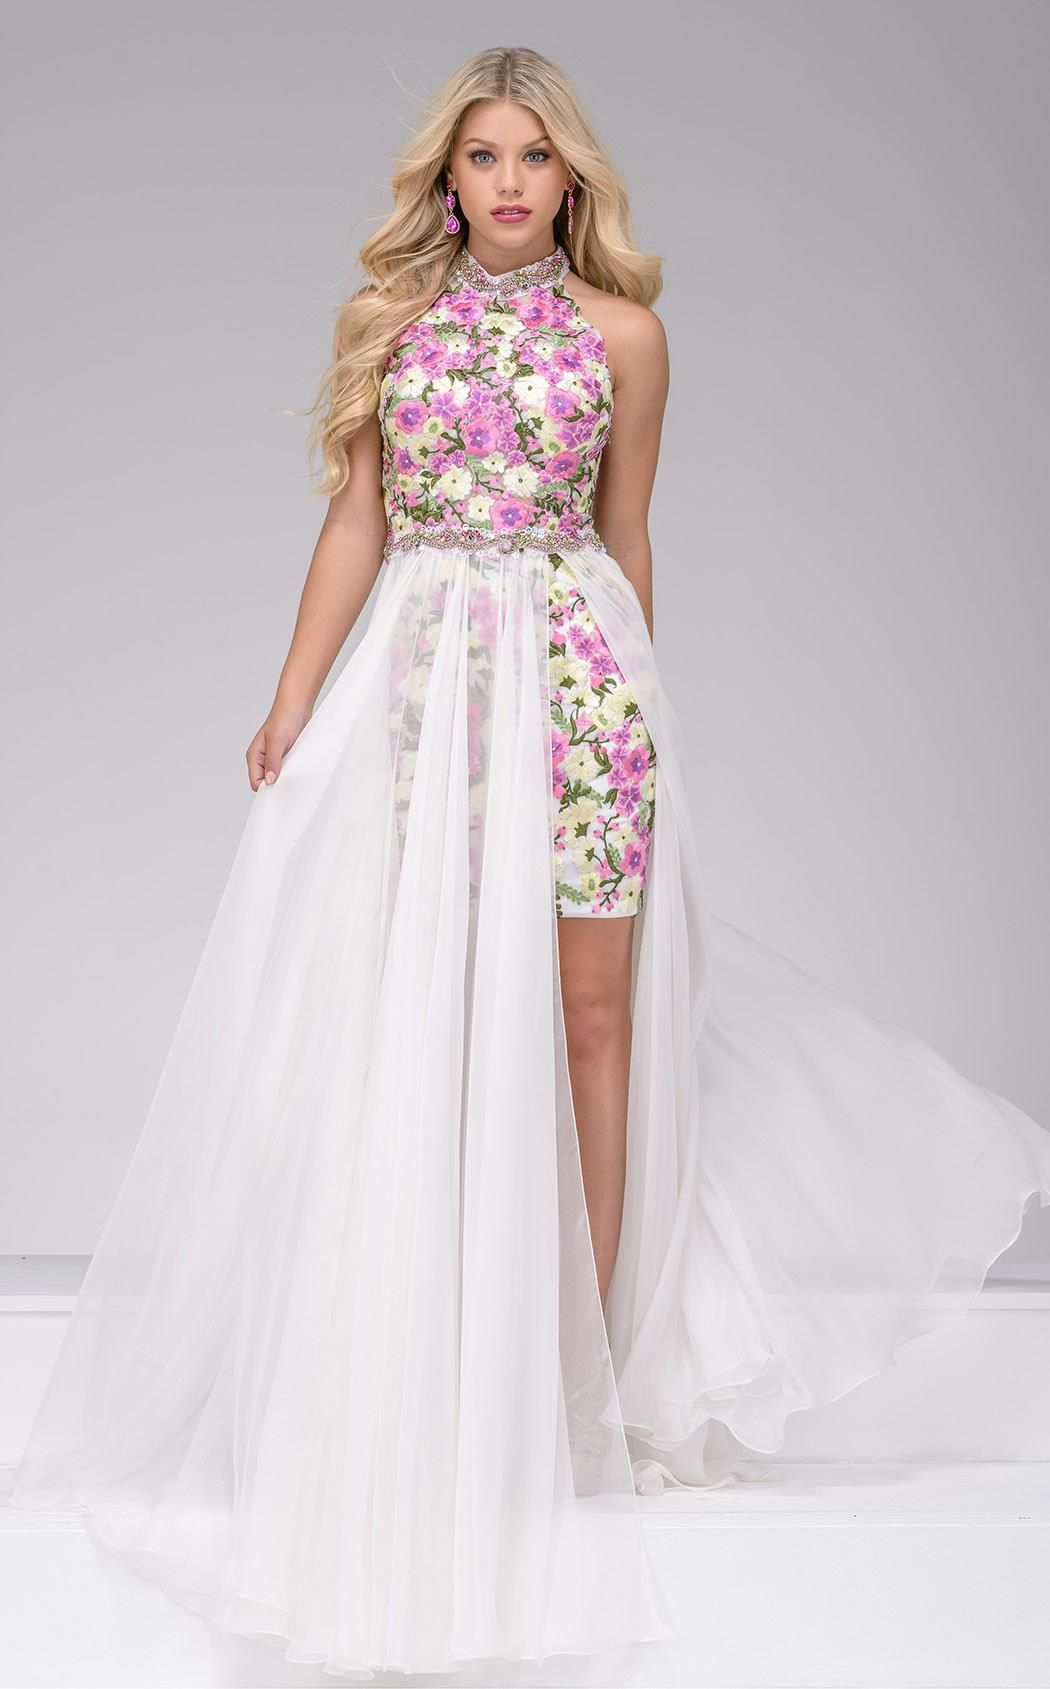 Jovani thumbnail gowns pinterest gowns floral and shorts